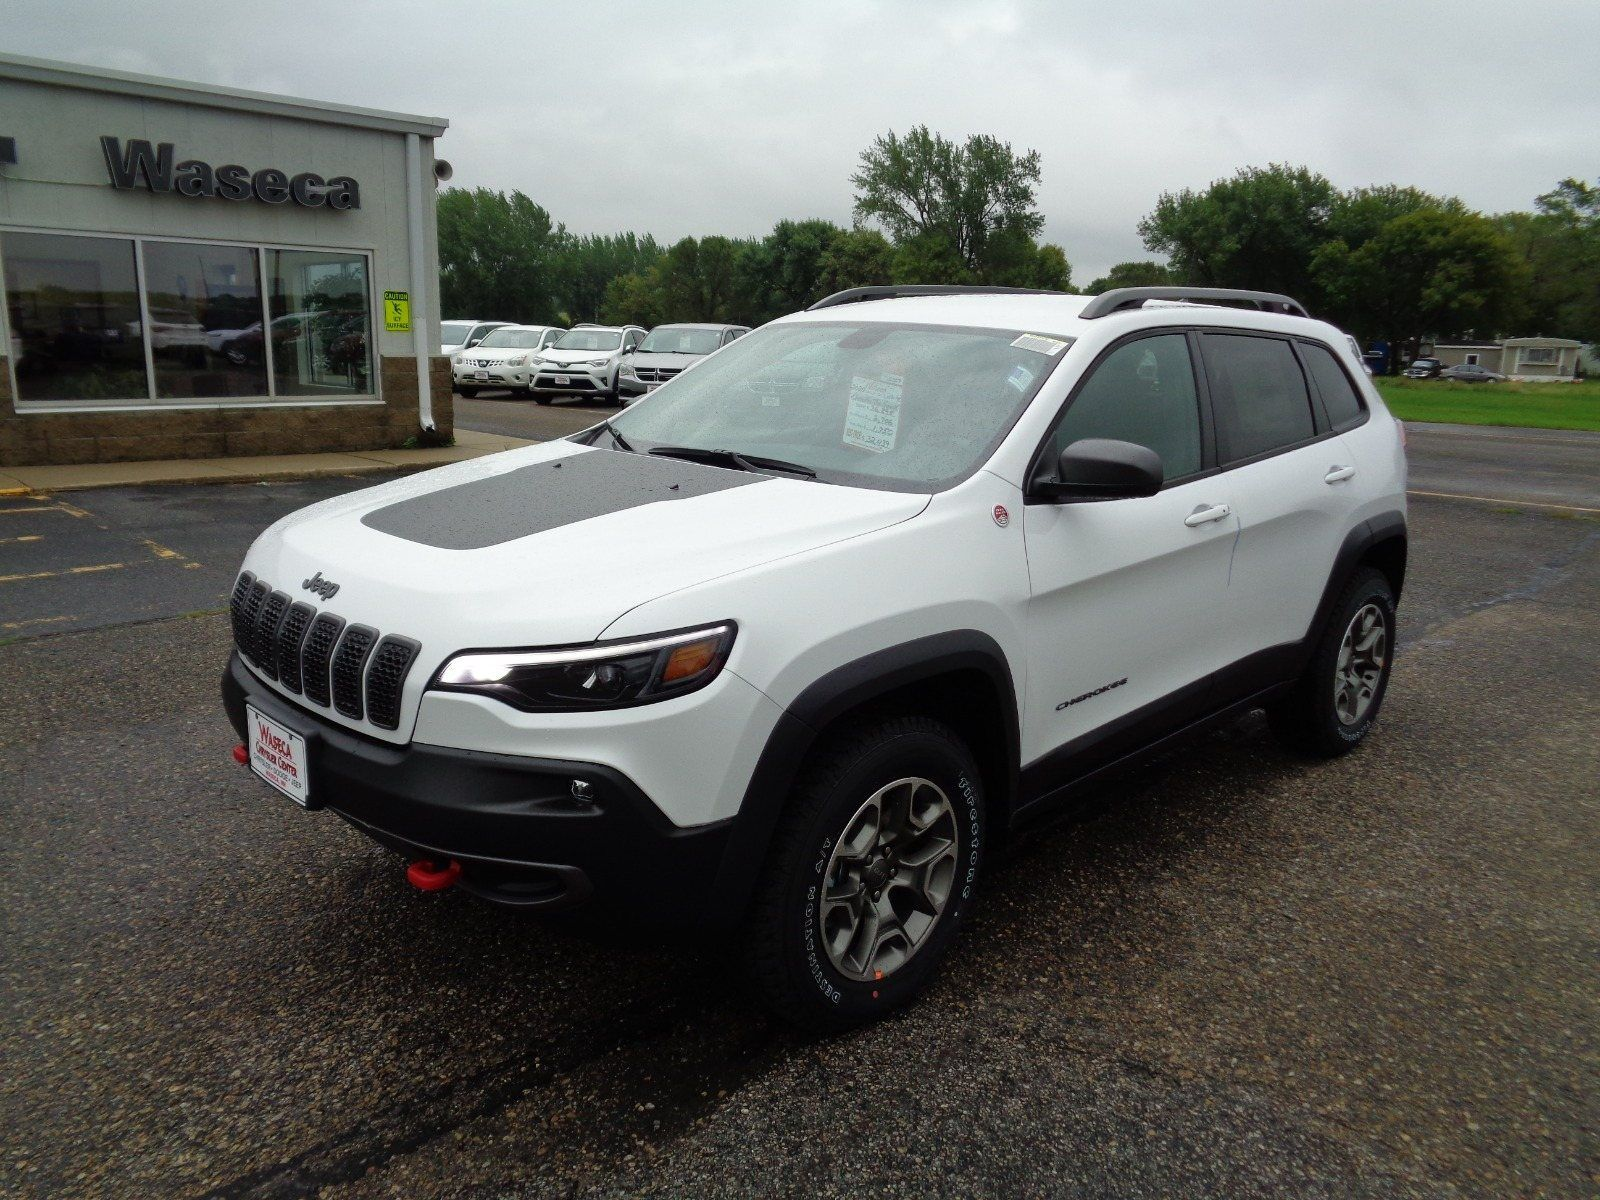 2021 Jeep Trail Hawk Price and Review